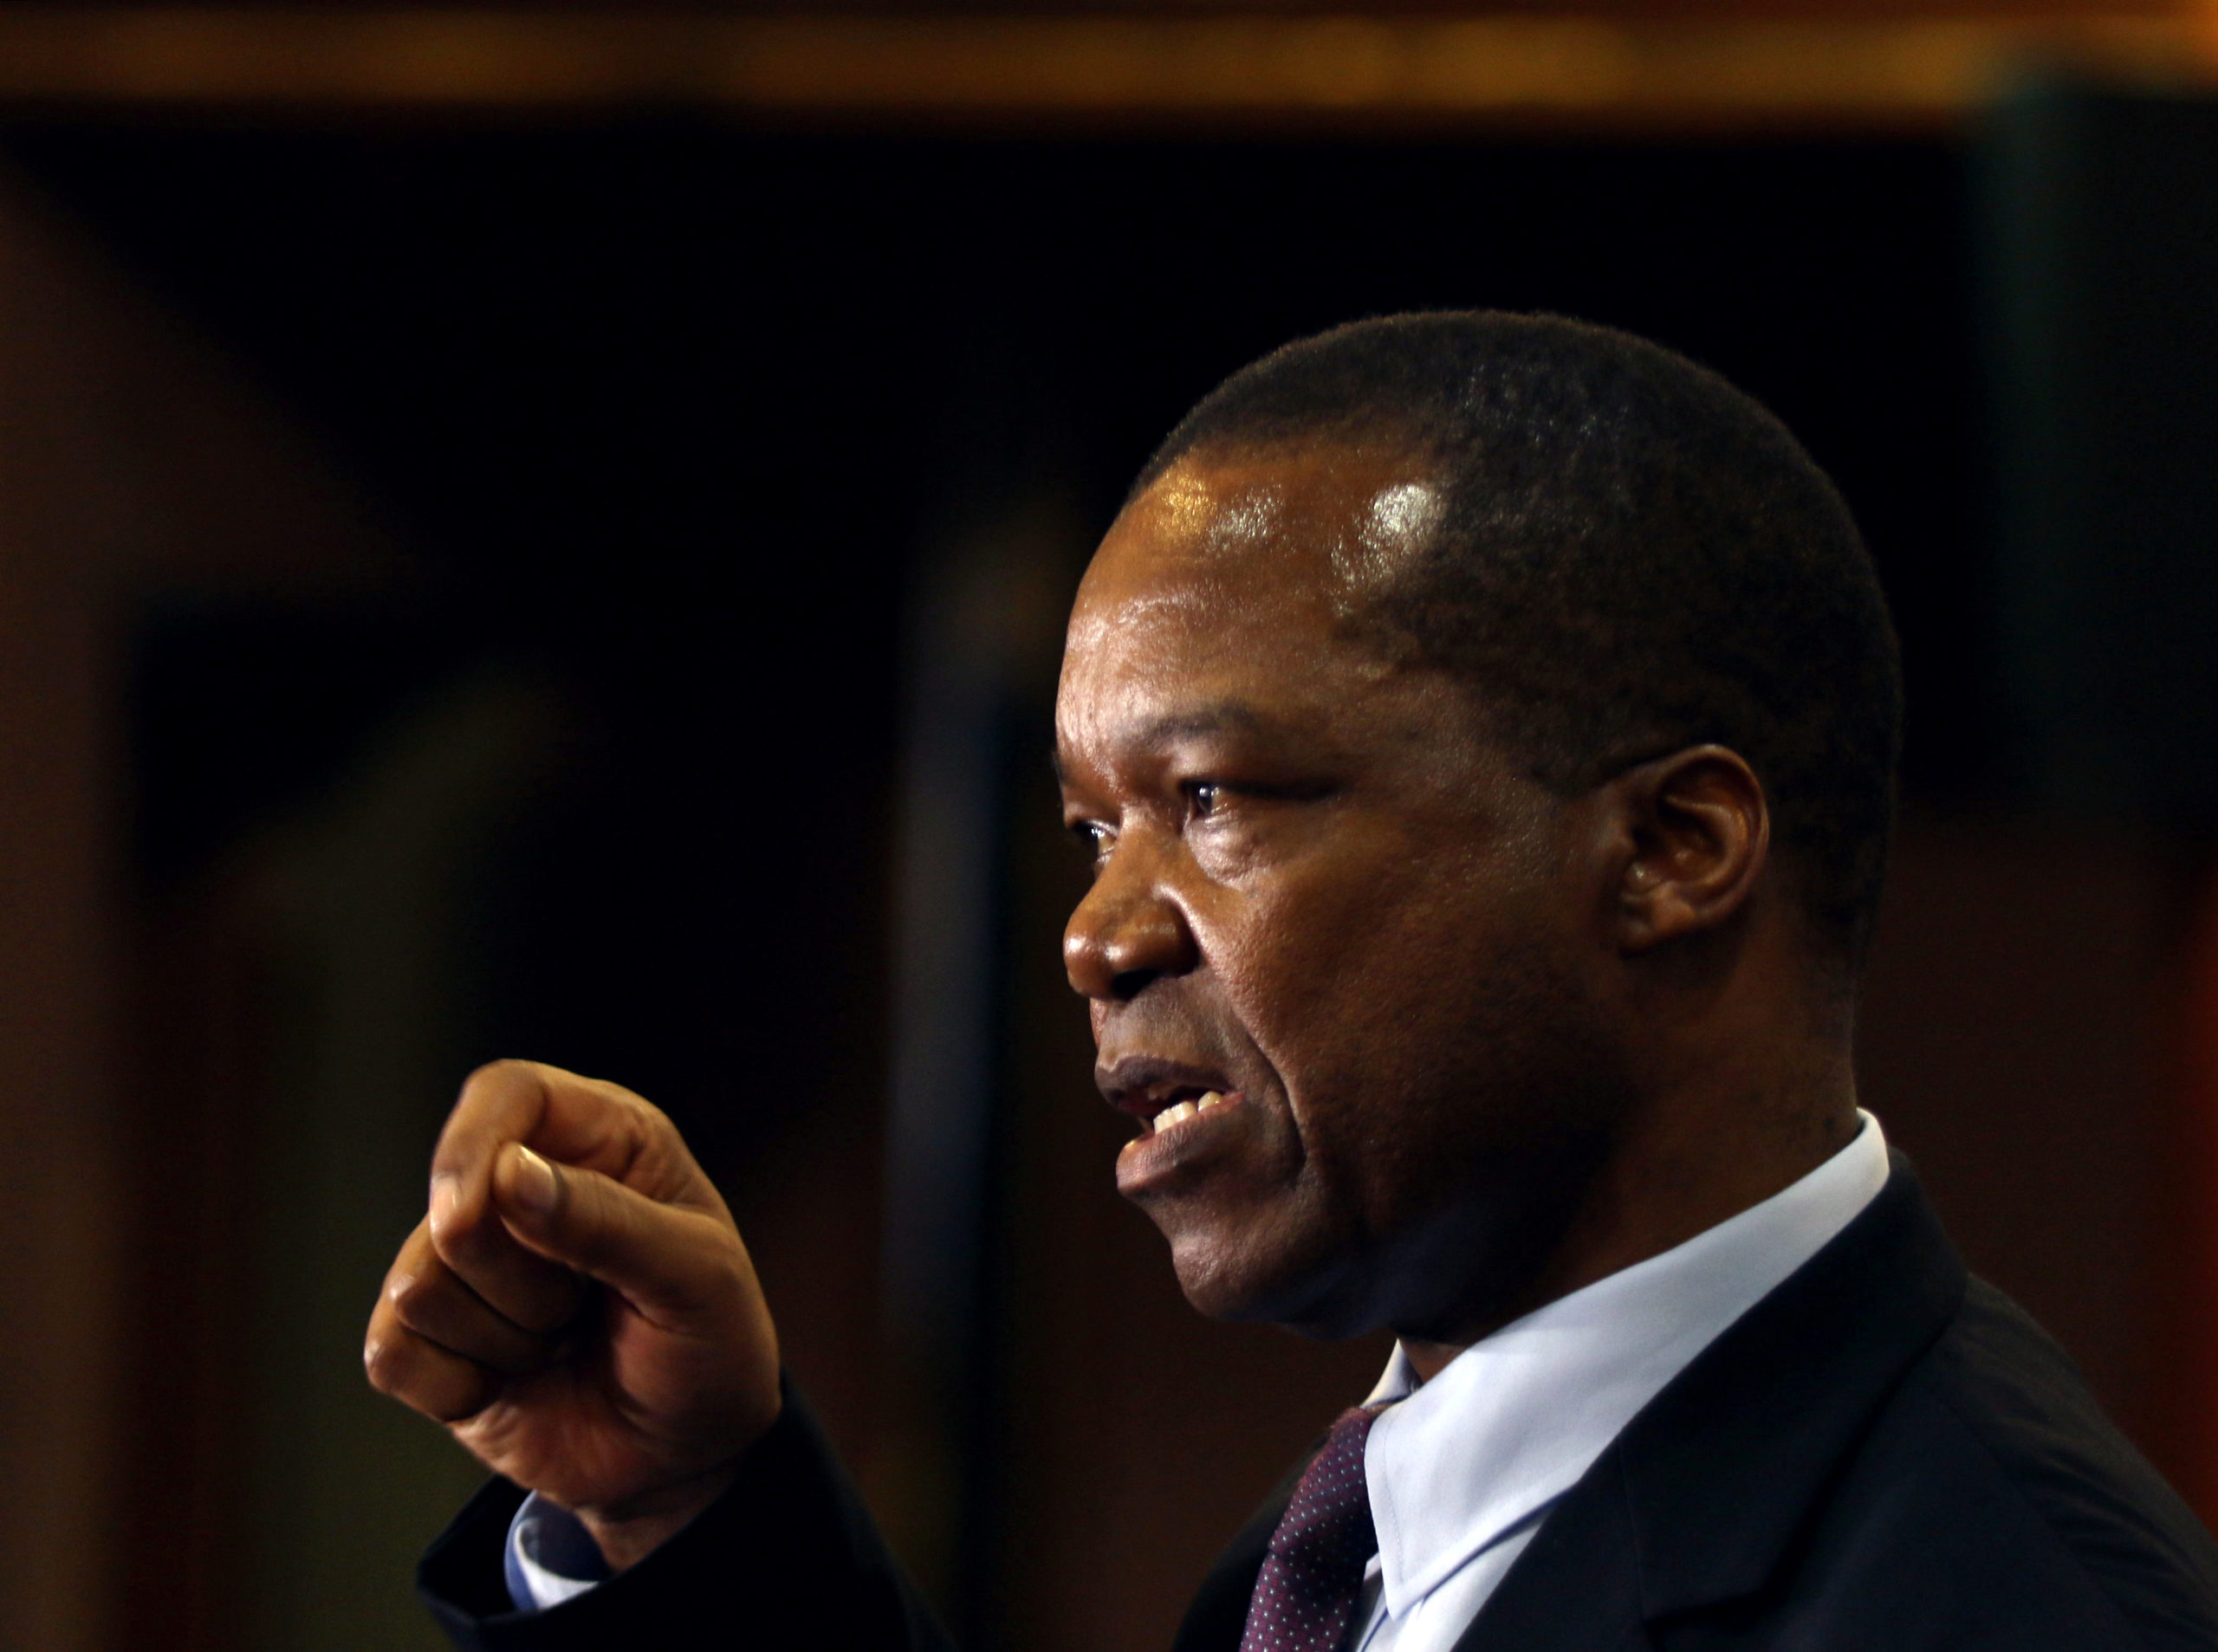 Reserve Bank of Zimbabwe (RBZ) Governor John Mangudya gestures as he delivers his 2018 Monetary Policy Statement in Harare, Zimbabwe February 7, 2018. REUTERS/Philimon Bulawayo